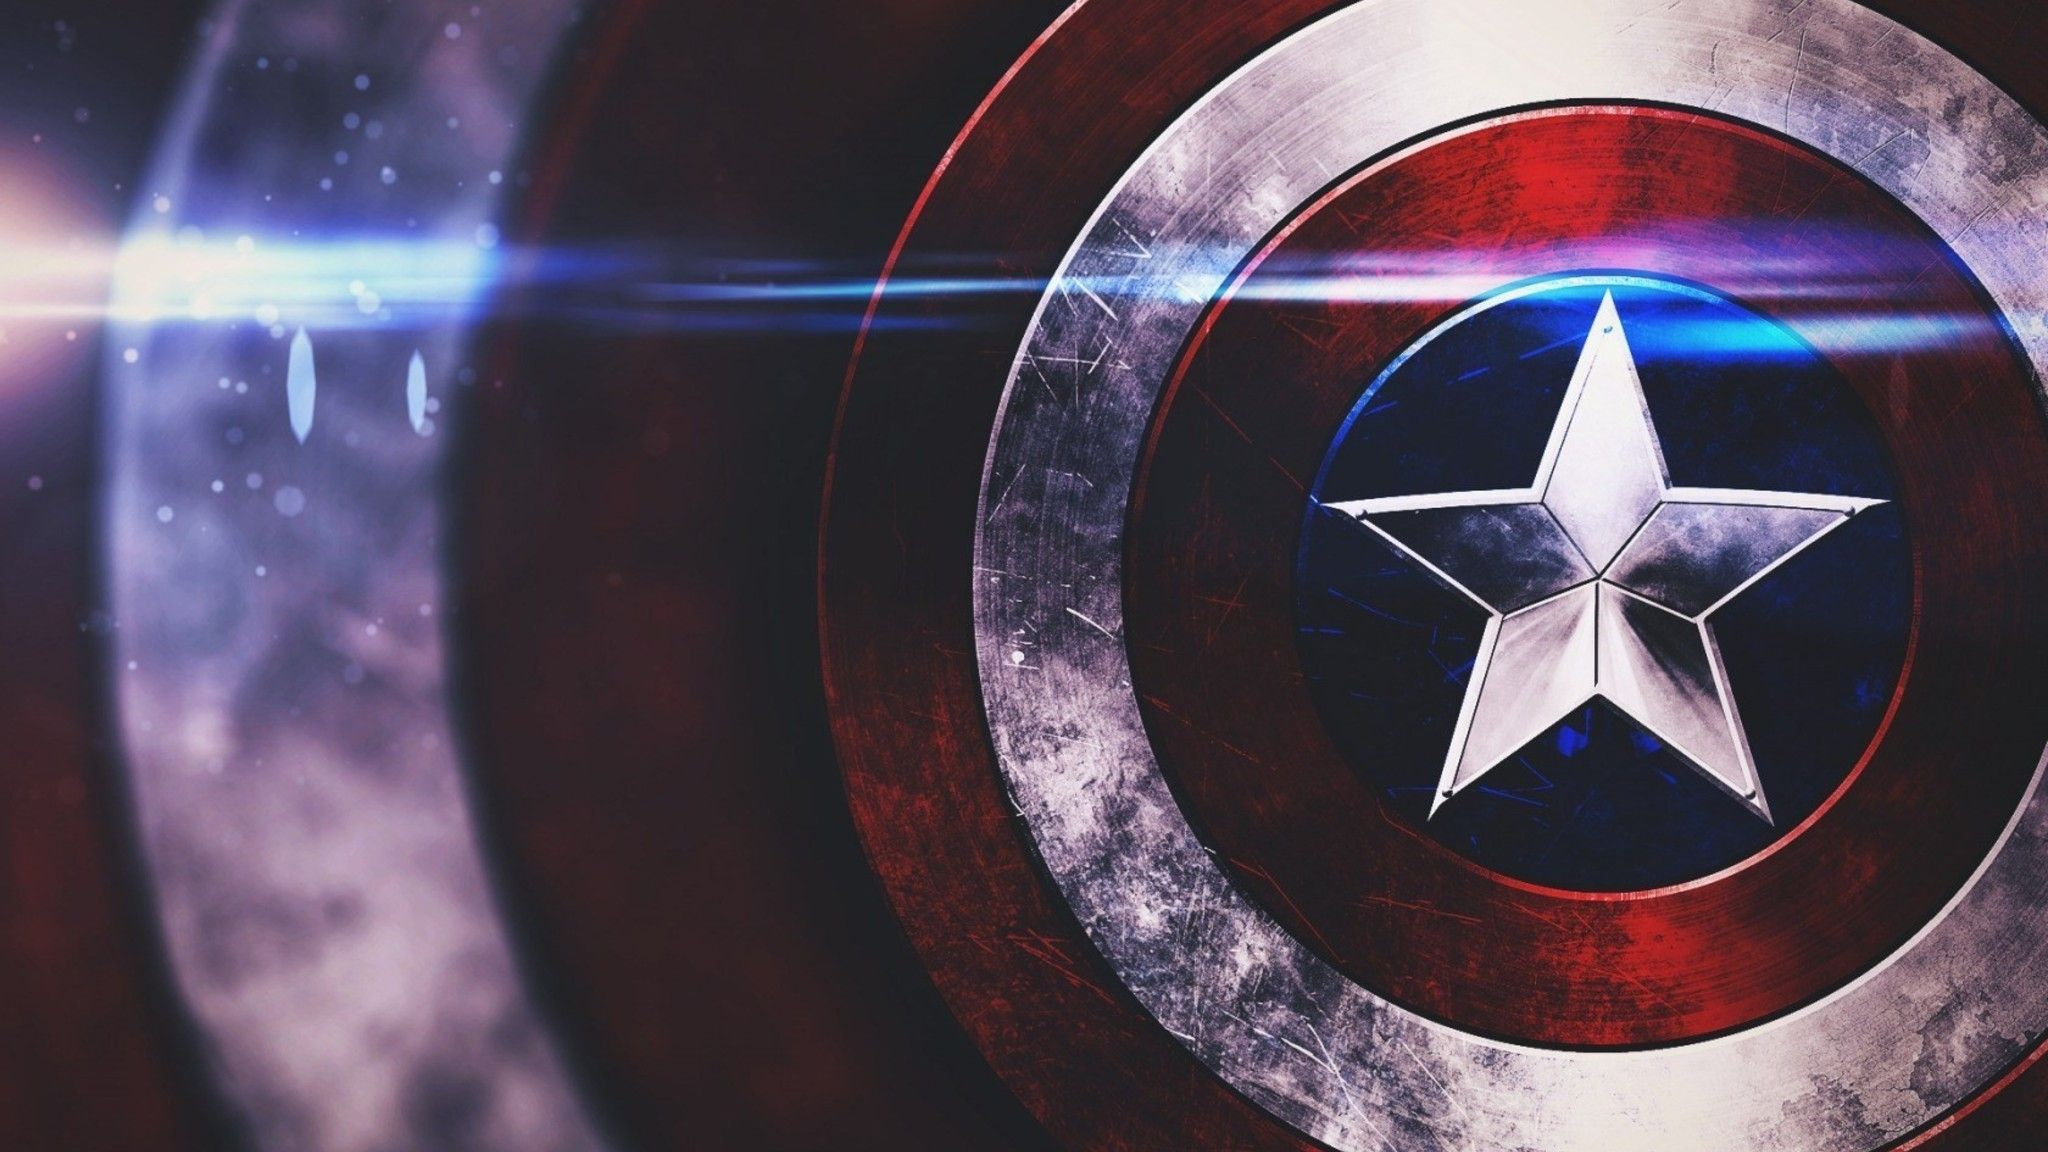 Captain America Wallpaper Image By Gianna Lopez On Captain America